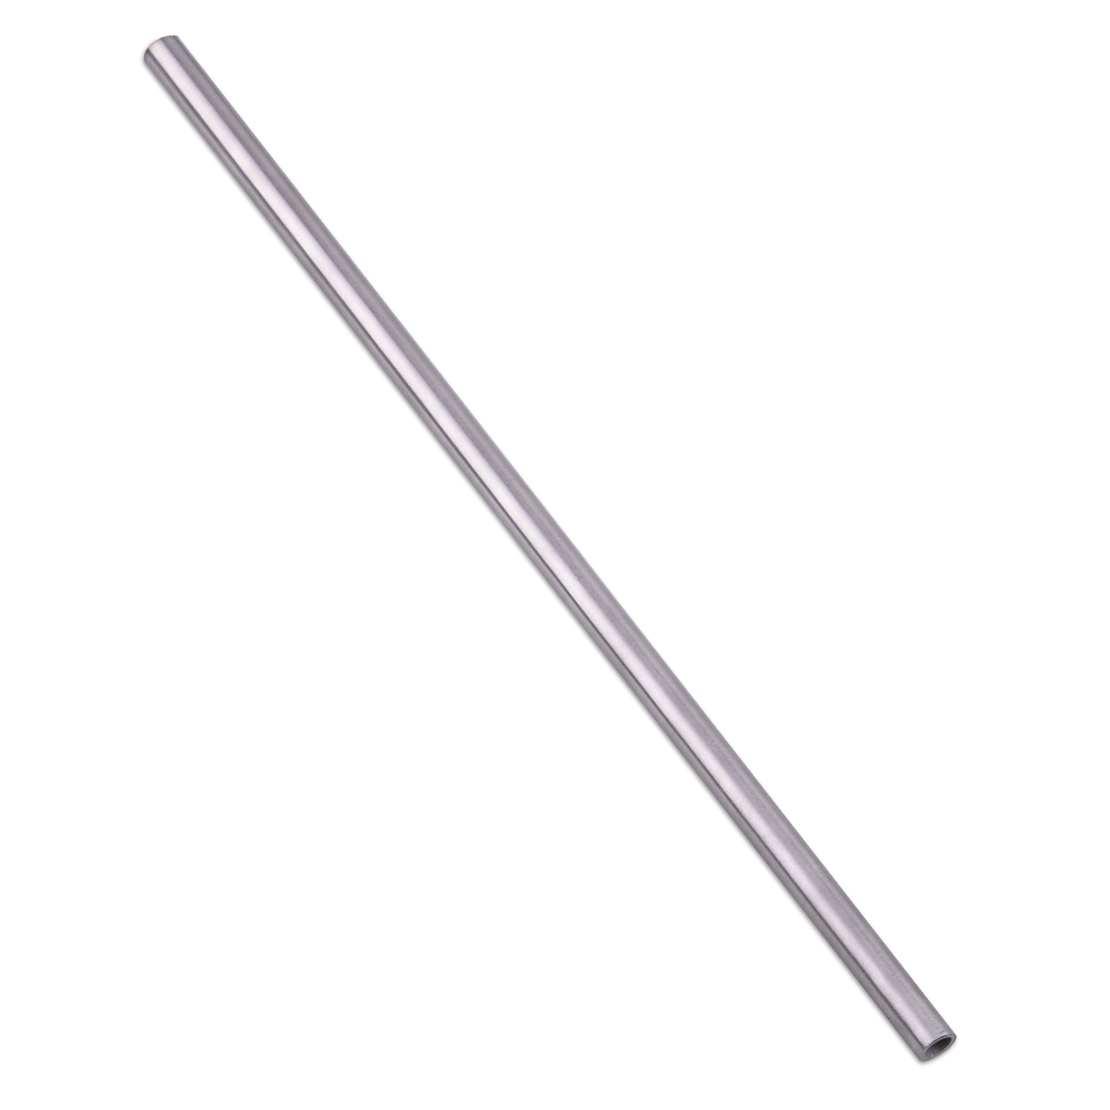 LETAOSK 250mm Length 304 Stainless Steel Capillary Tube With Corrosion Resistance Tool Round Tubing OD 8mm ID 6mm